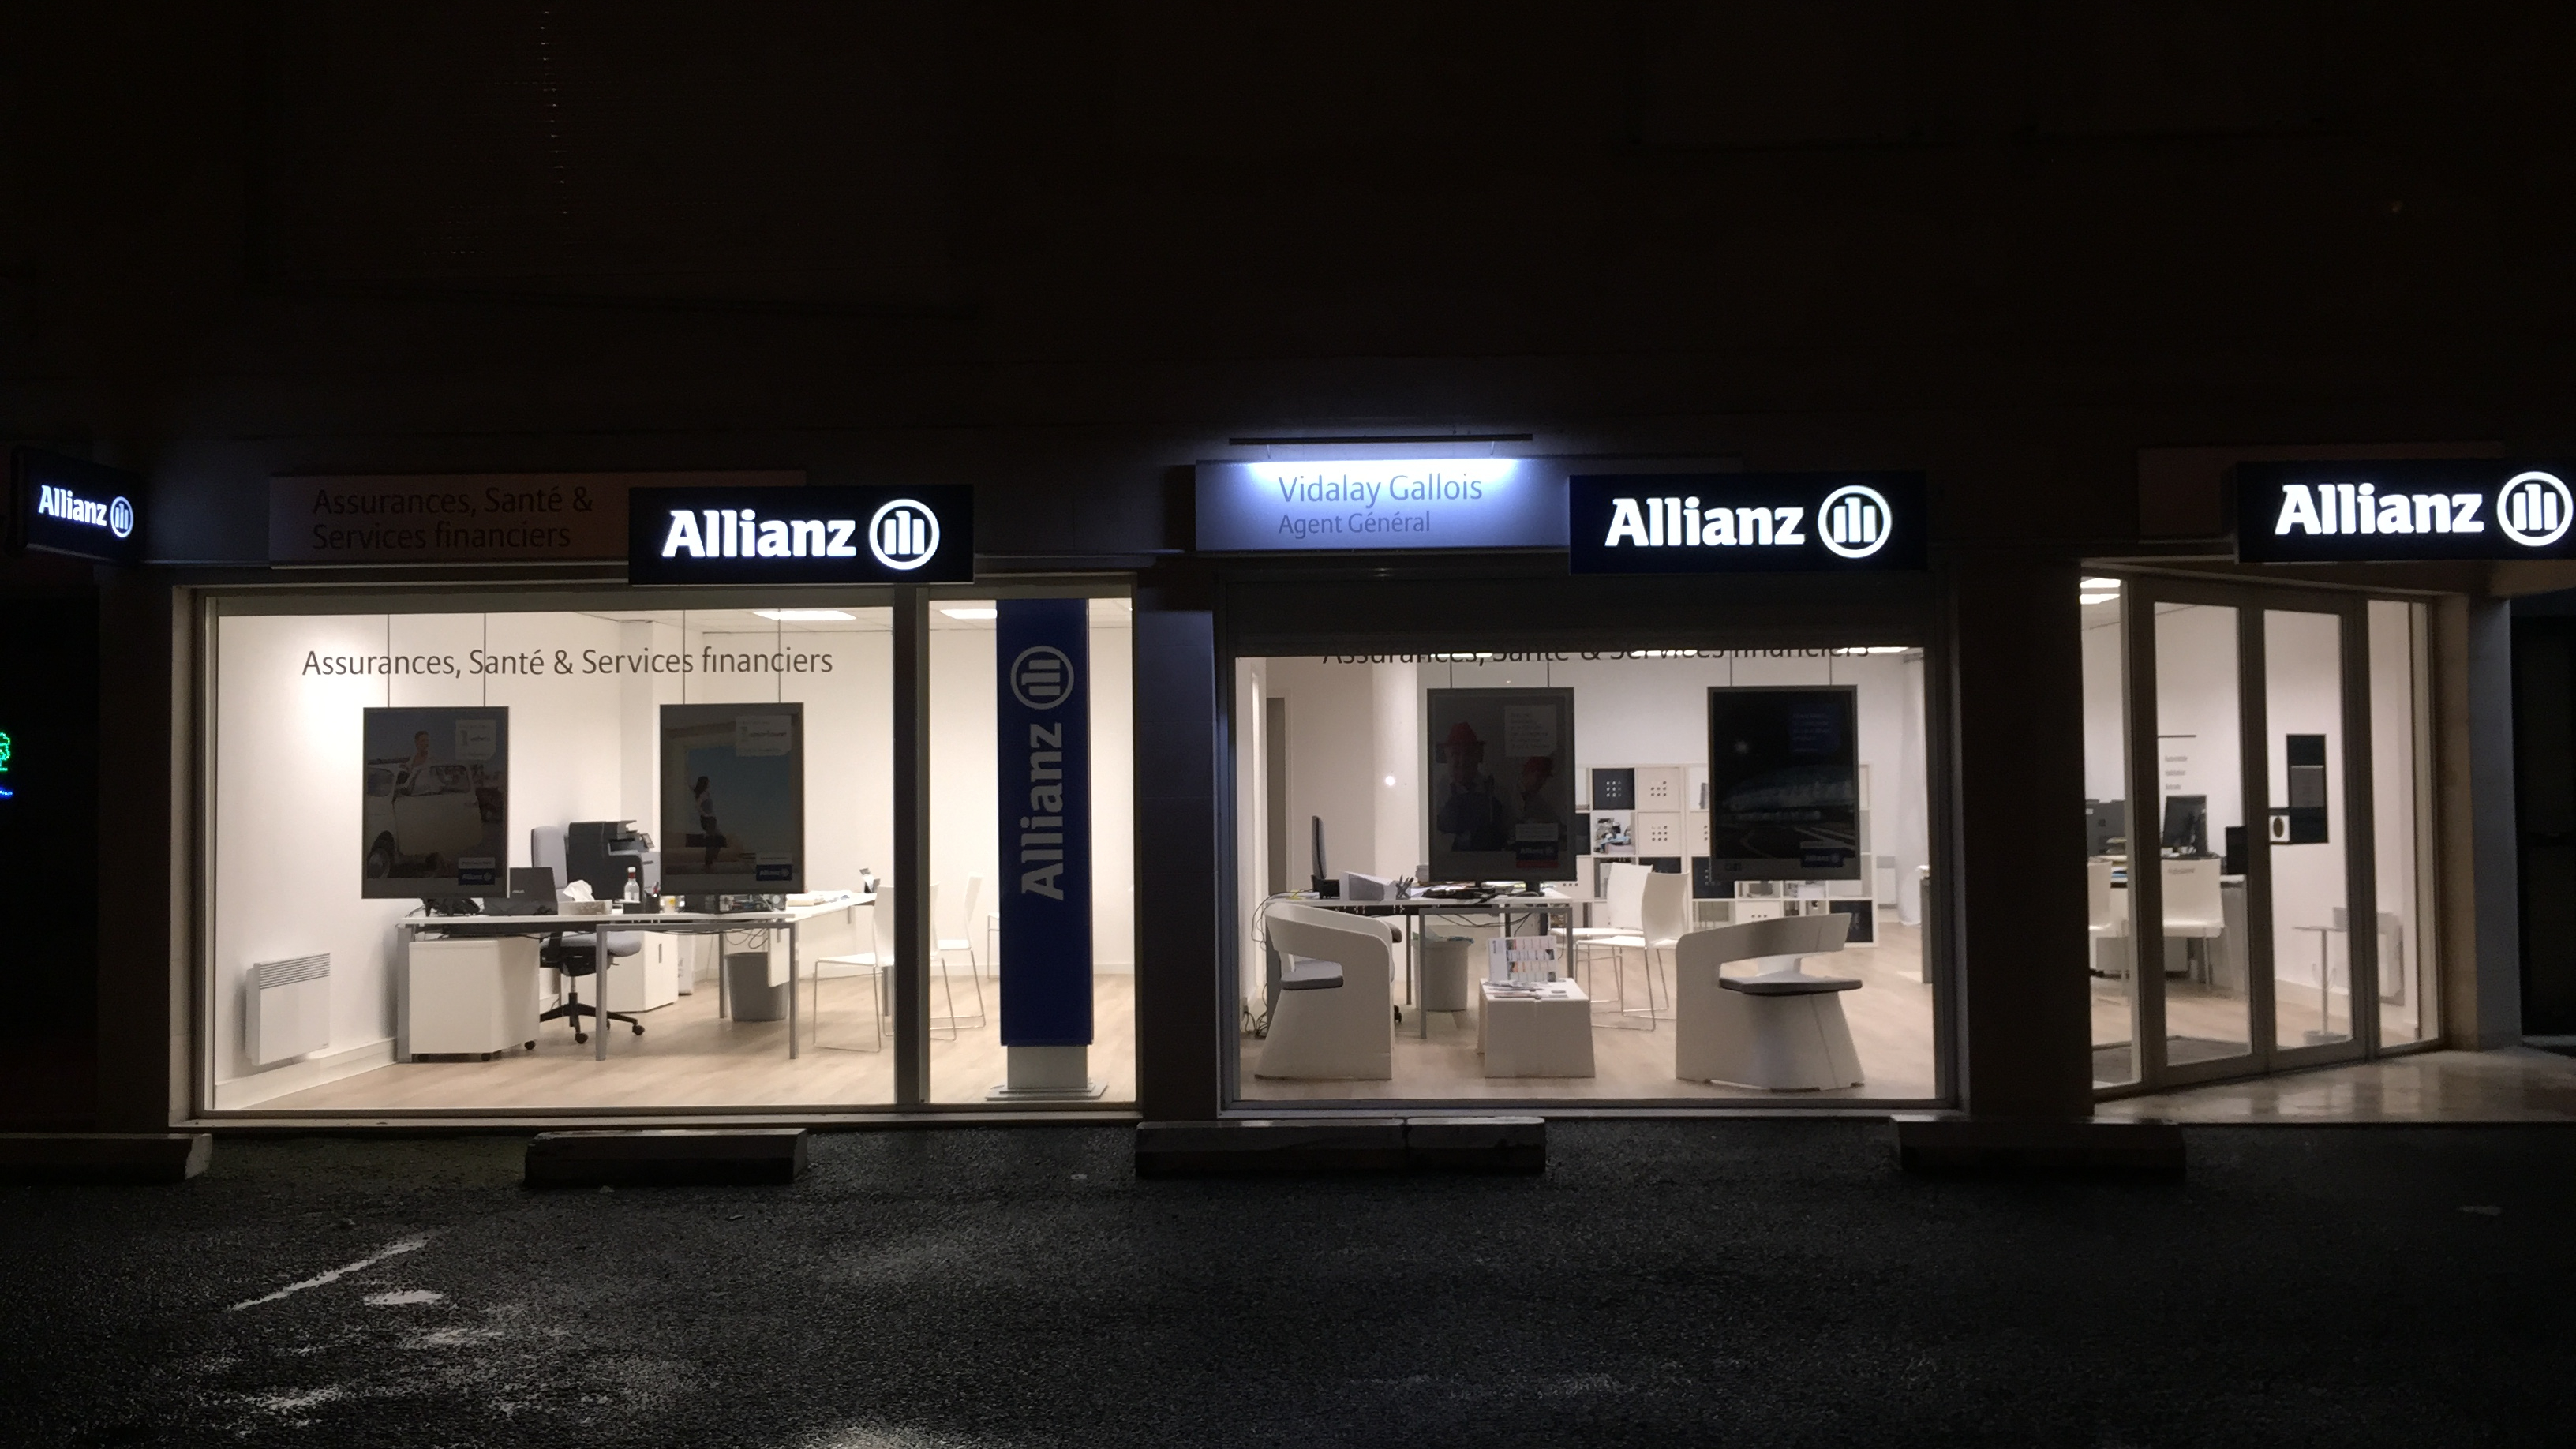 Allianz PESSAC ALOUETTE - Vidalay GALLOIS